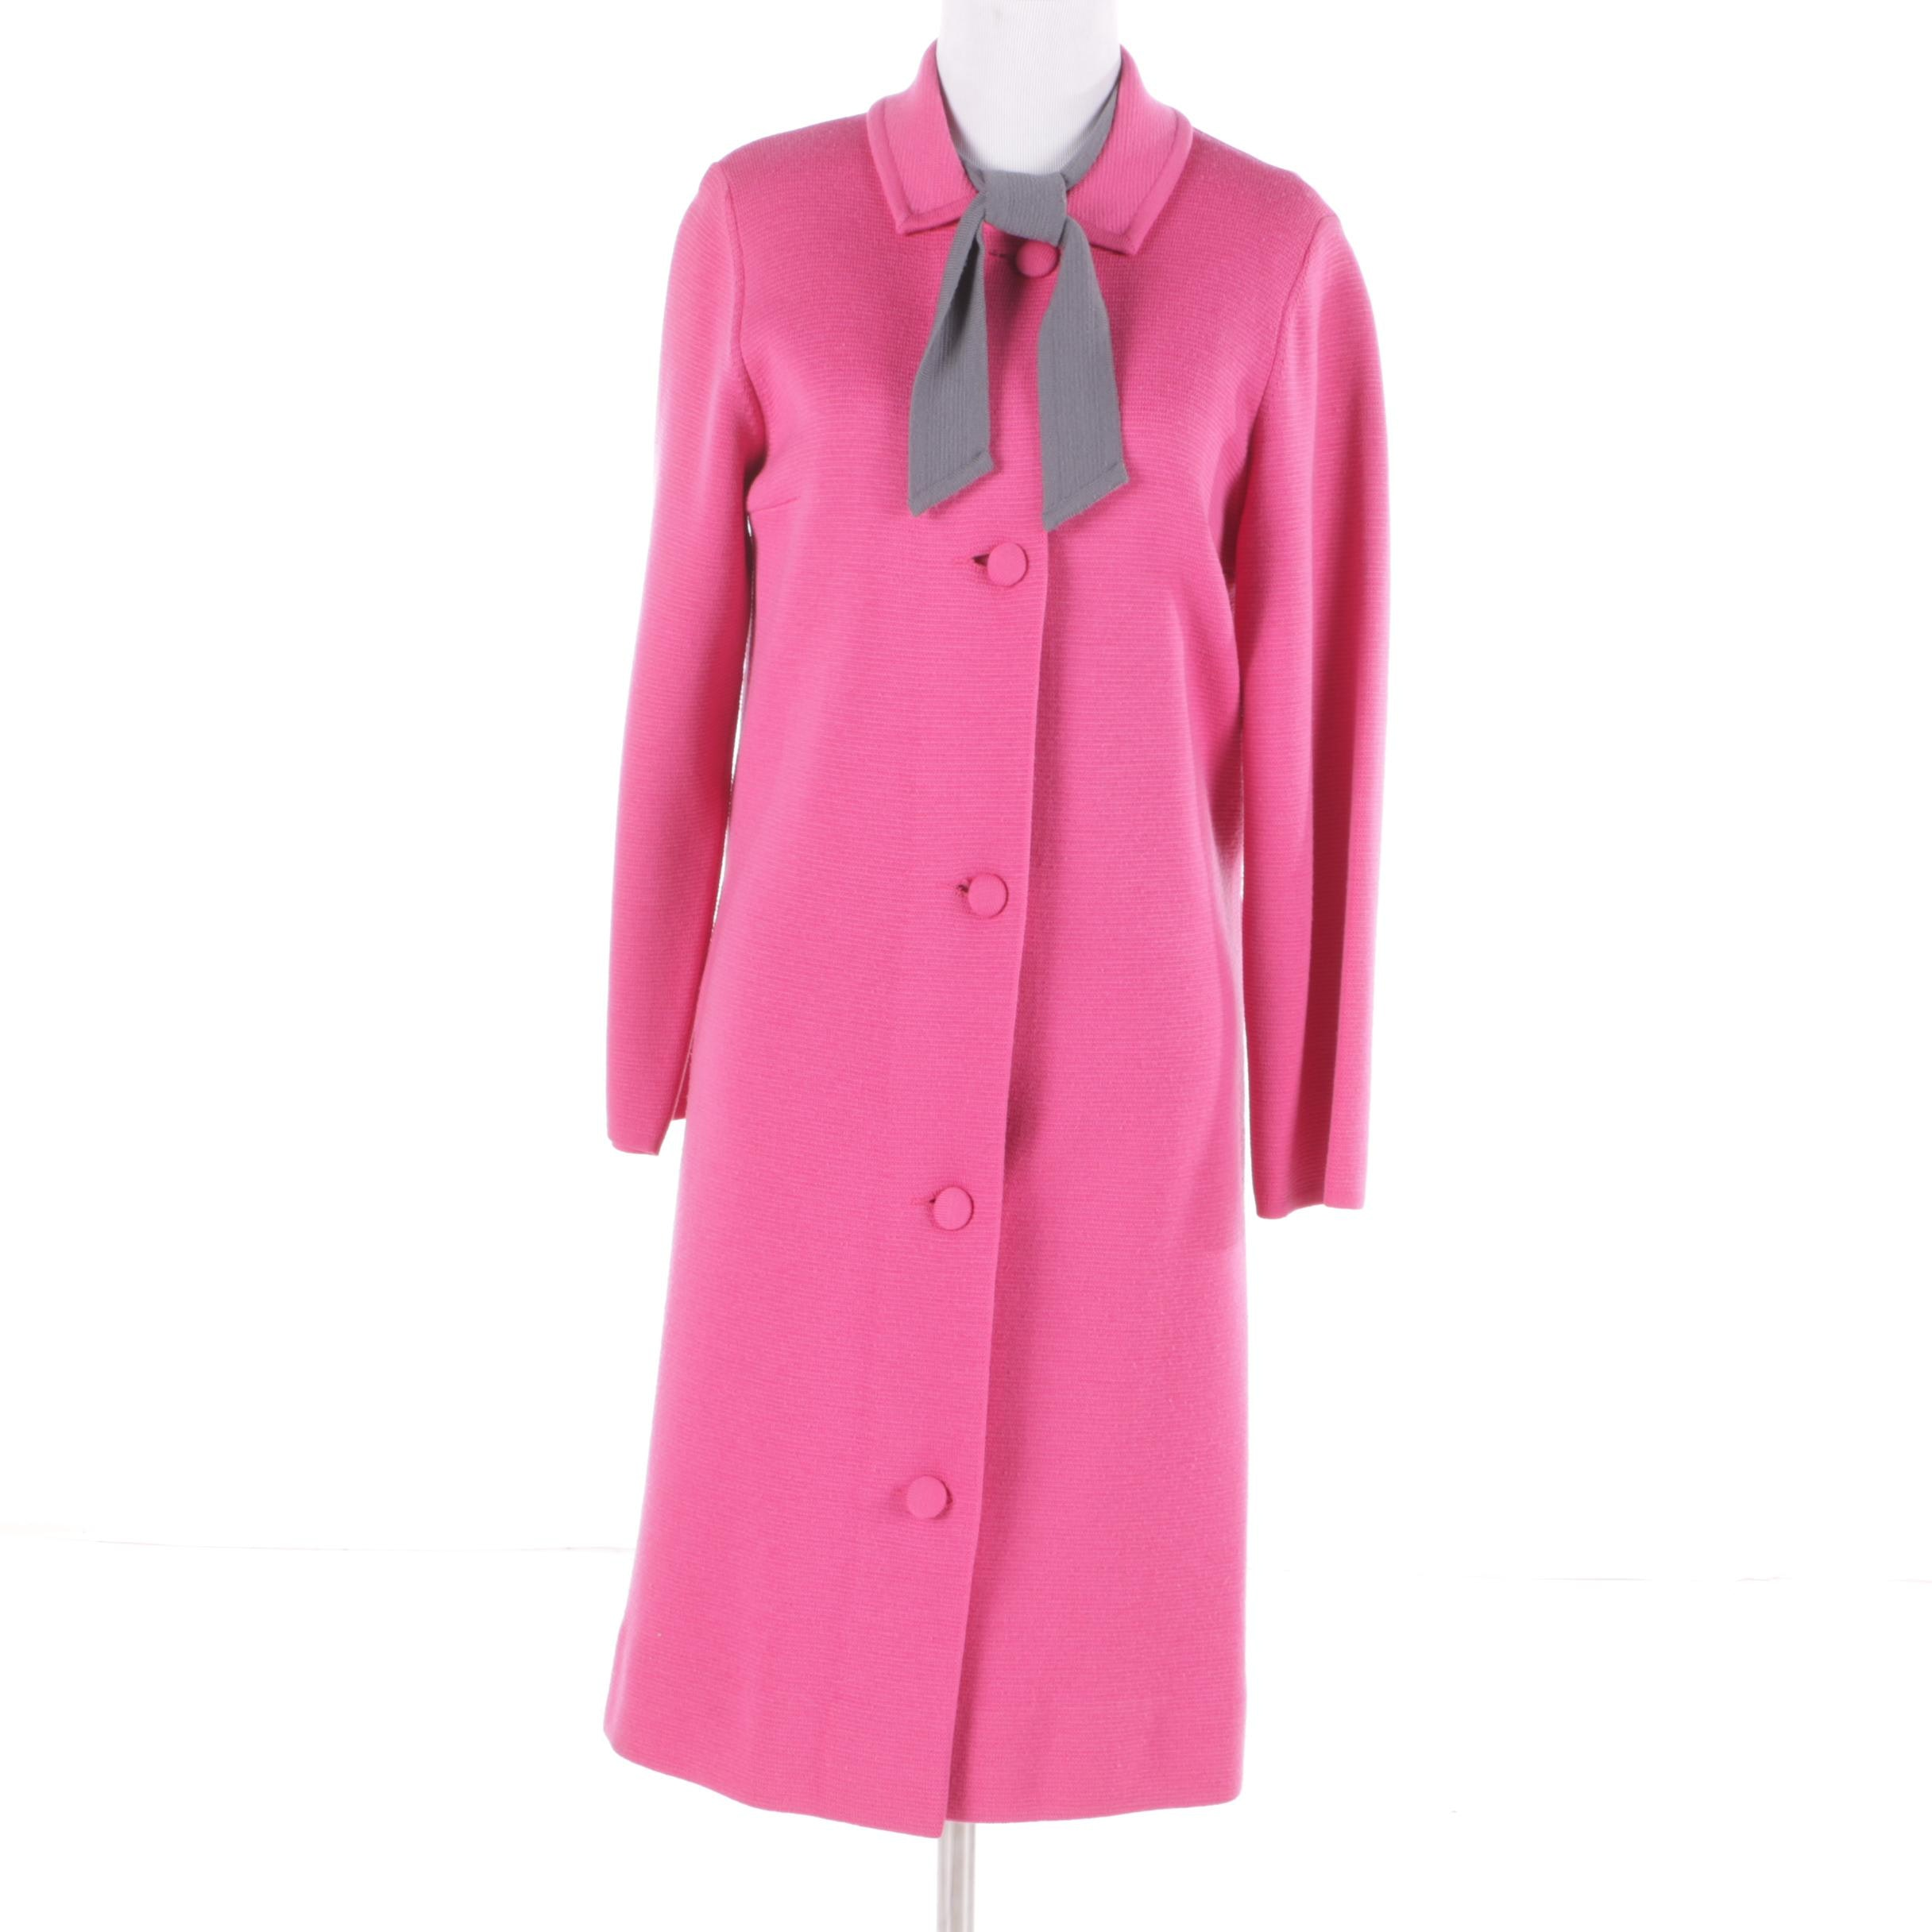 Women's Vintage Saks Fifth Avenue Pink and Grey Wool Coat and Dress